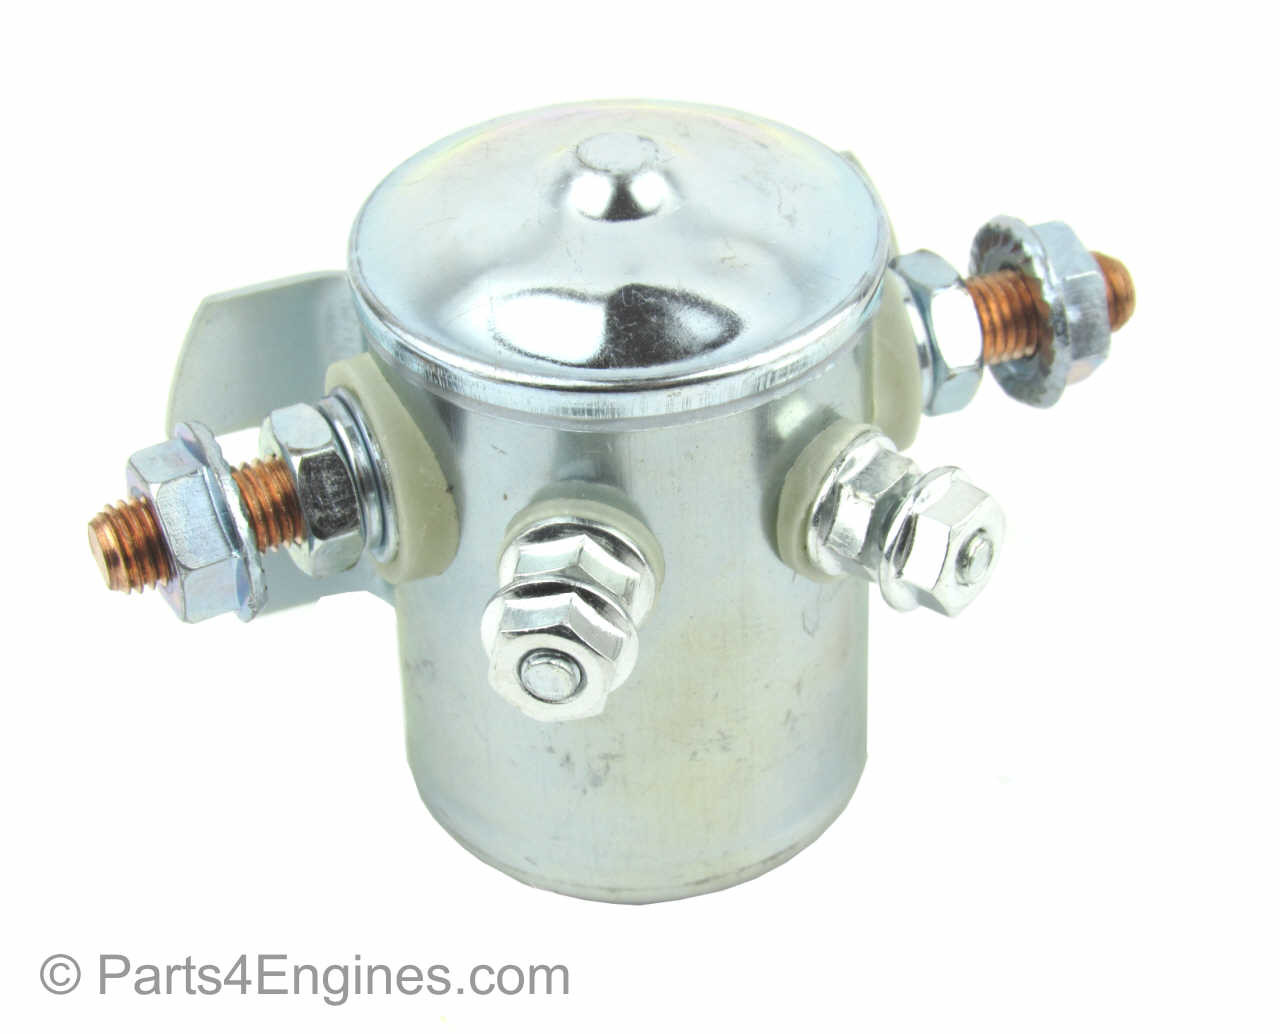 Perkins 6.354 Starter solenoid from parts4engines.com